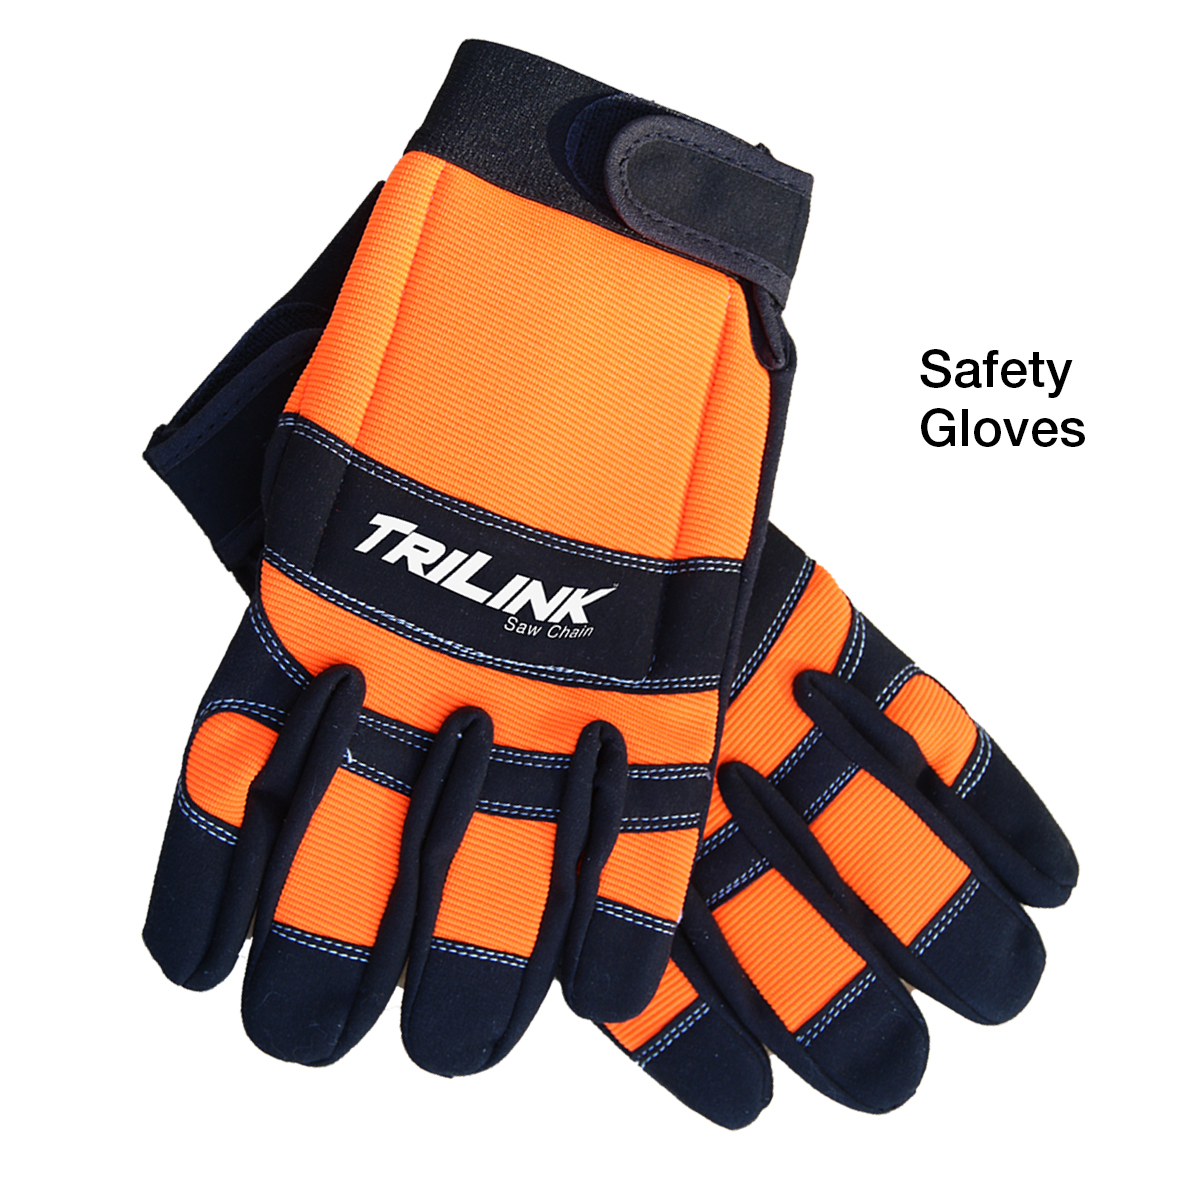 TL2 Safety Gloves